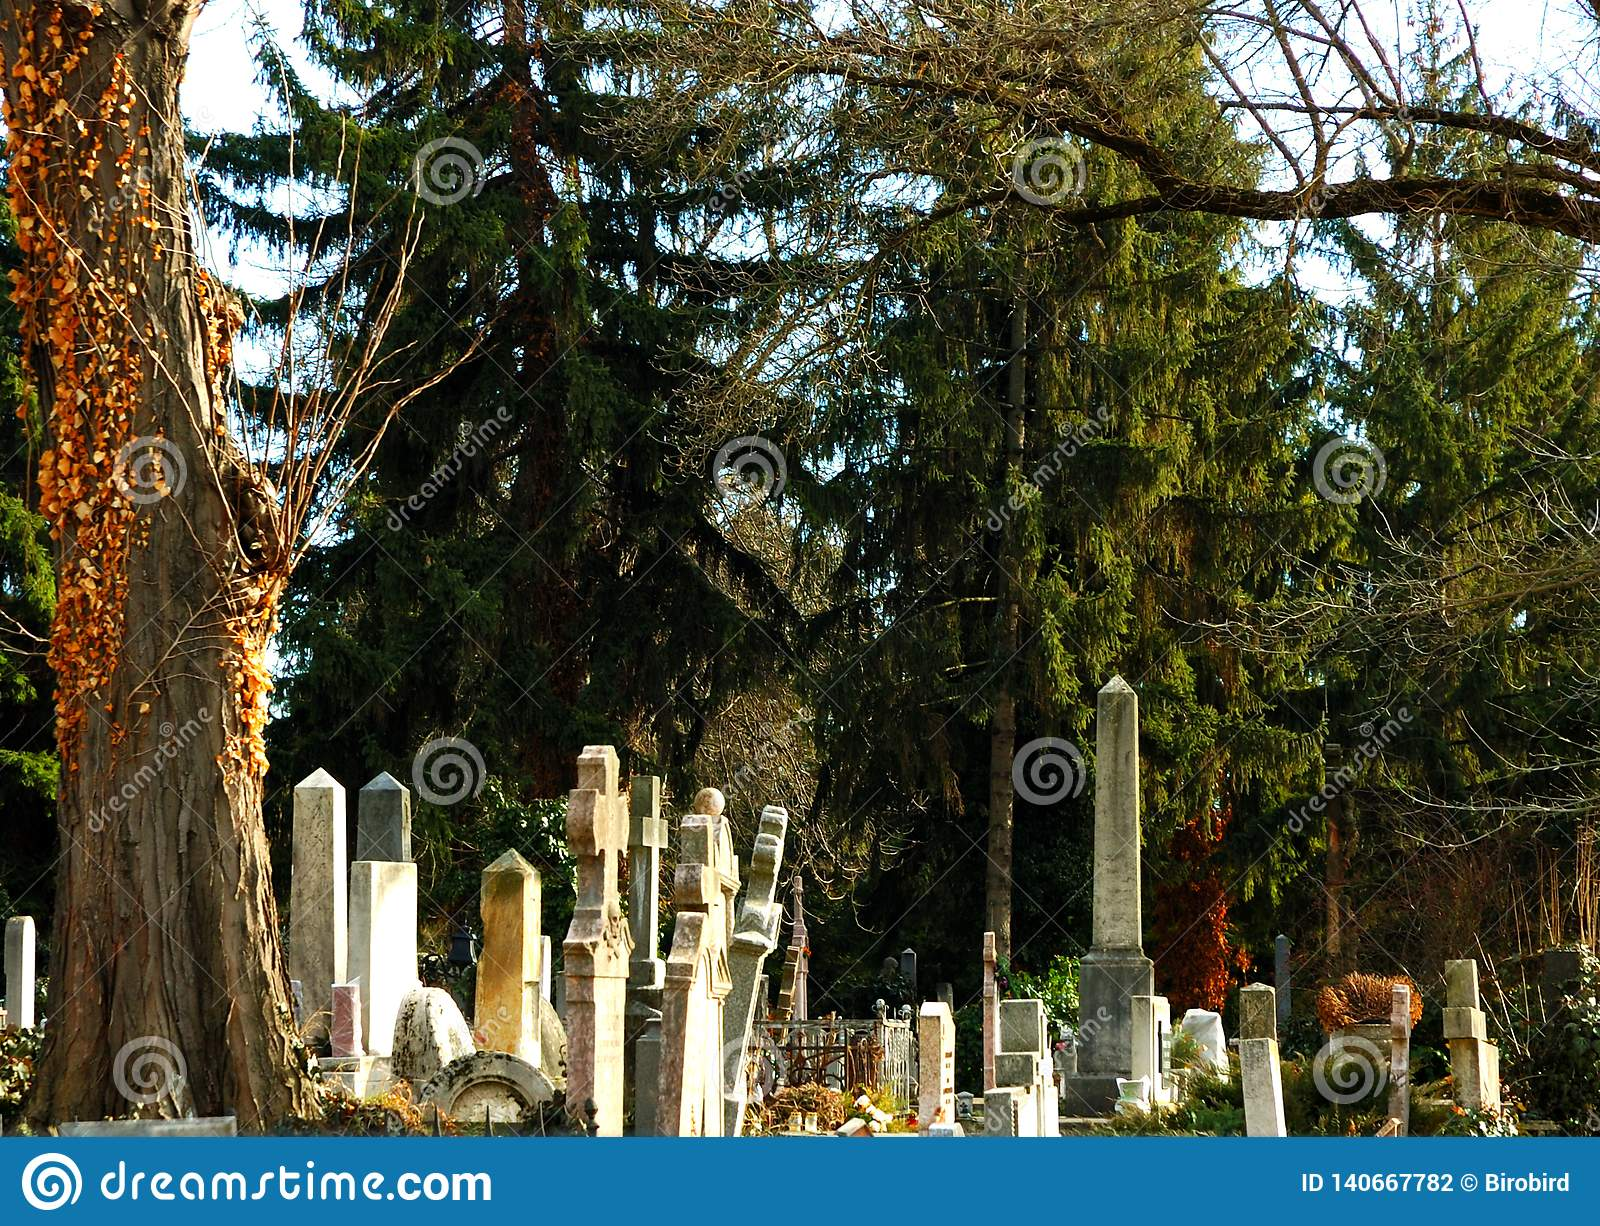 Gravestone in the pine`s shadow.